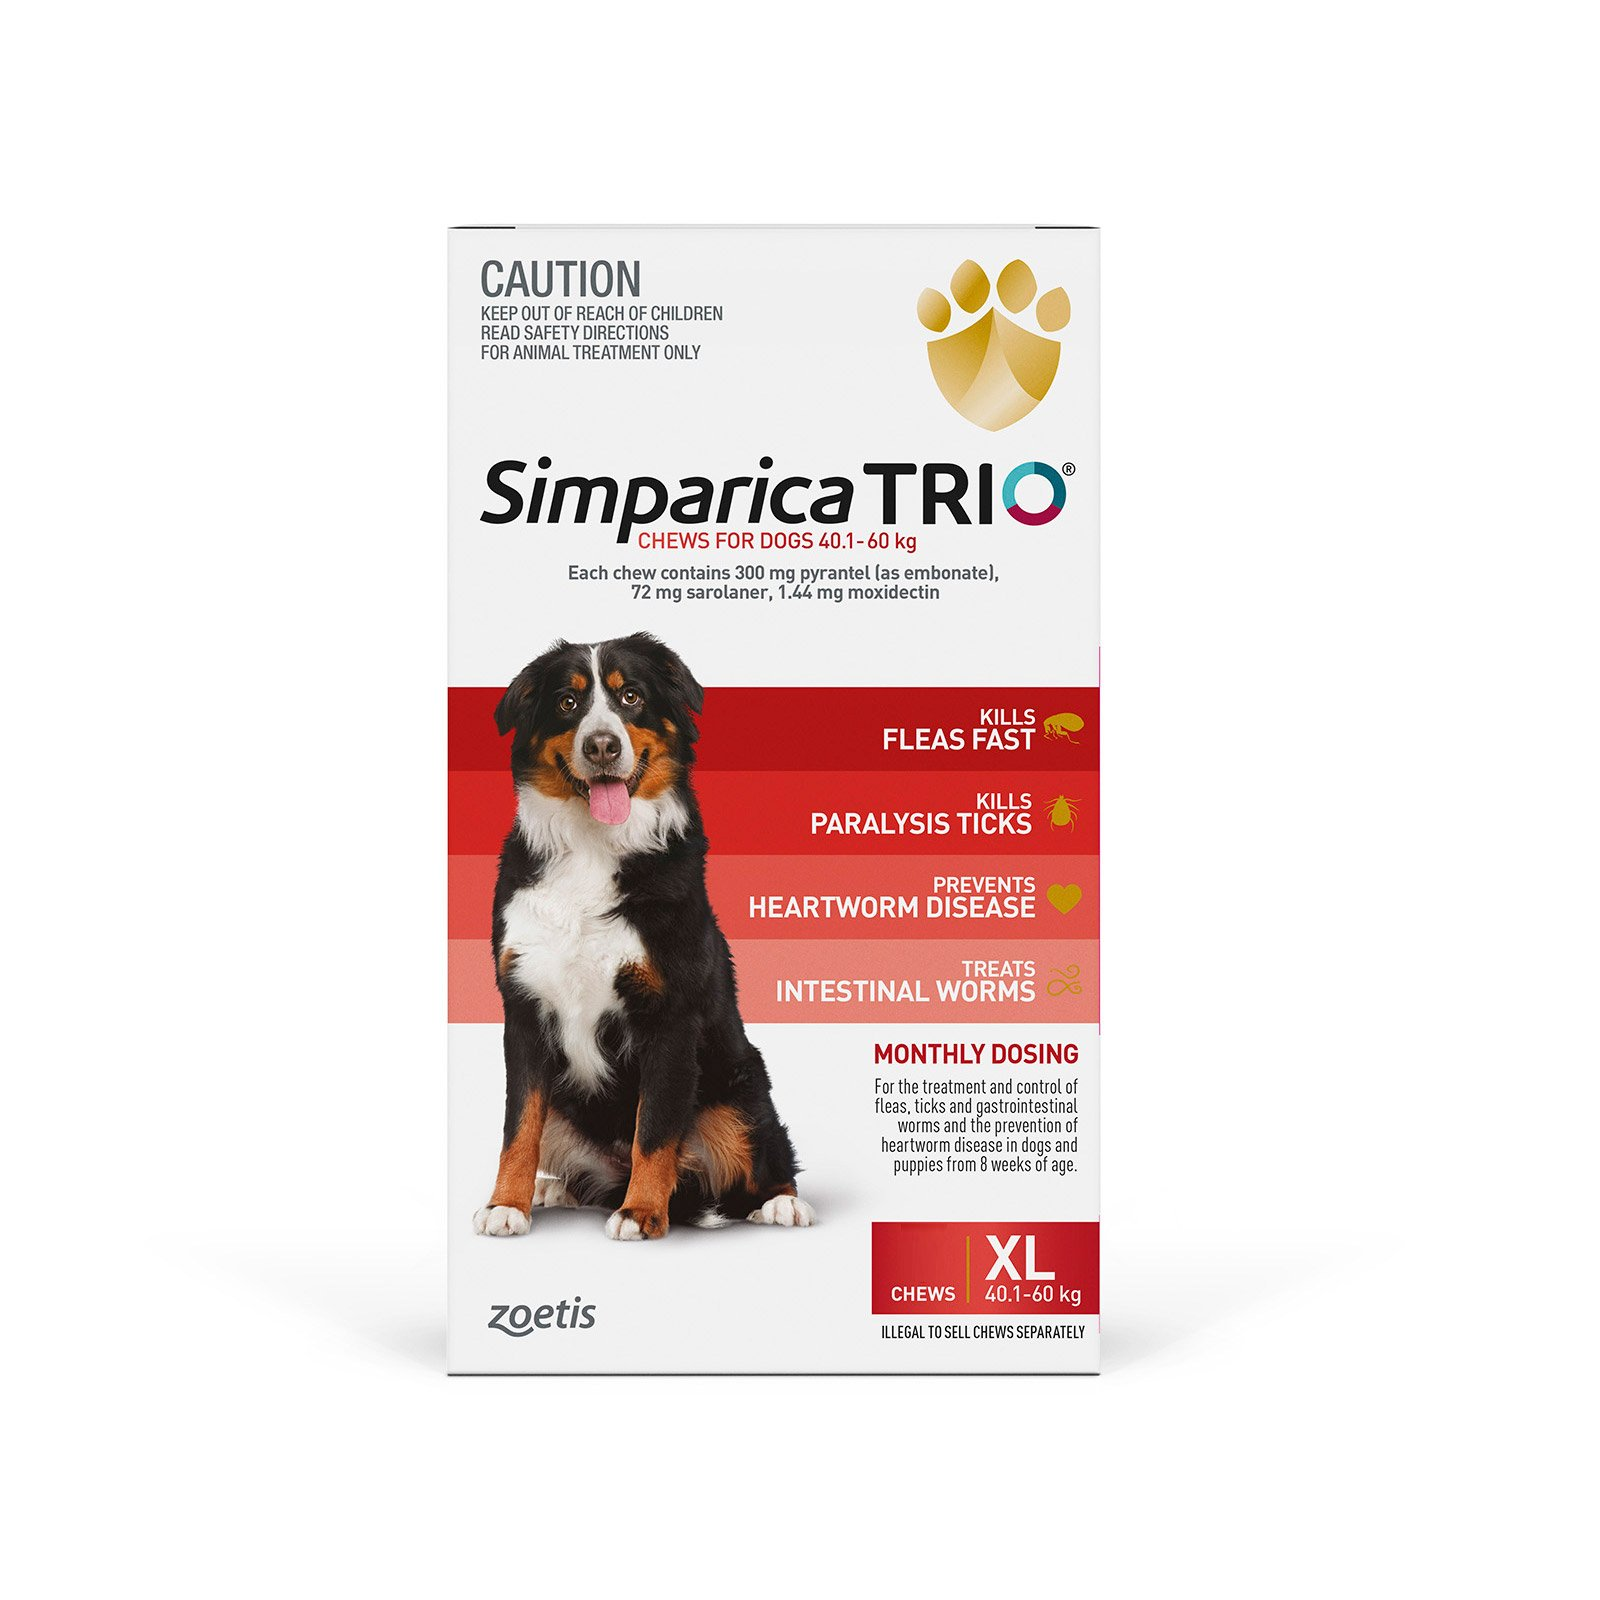 Simparica-trio-chew-for-extra-large-dogs20.1-40kg-red.jpg